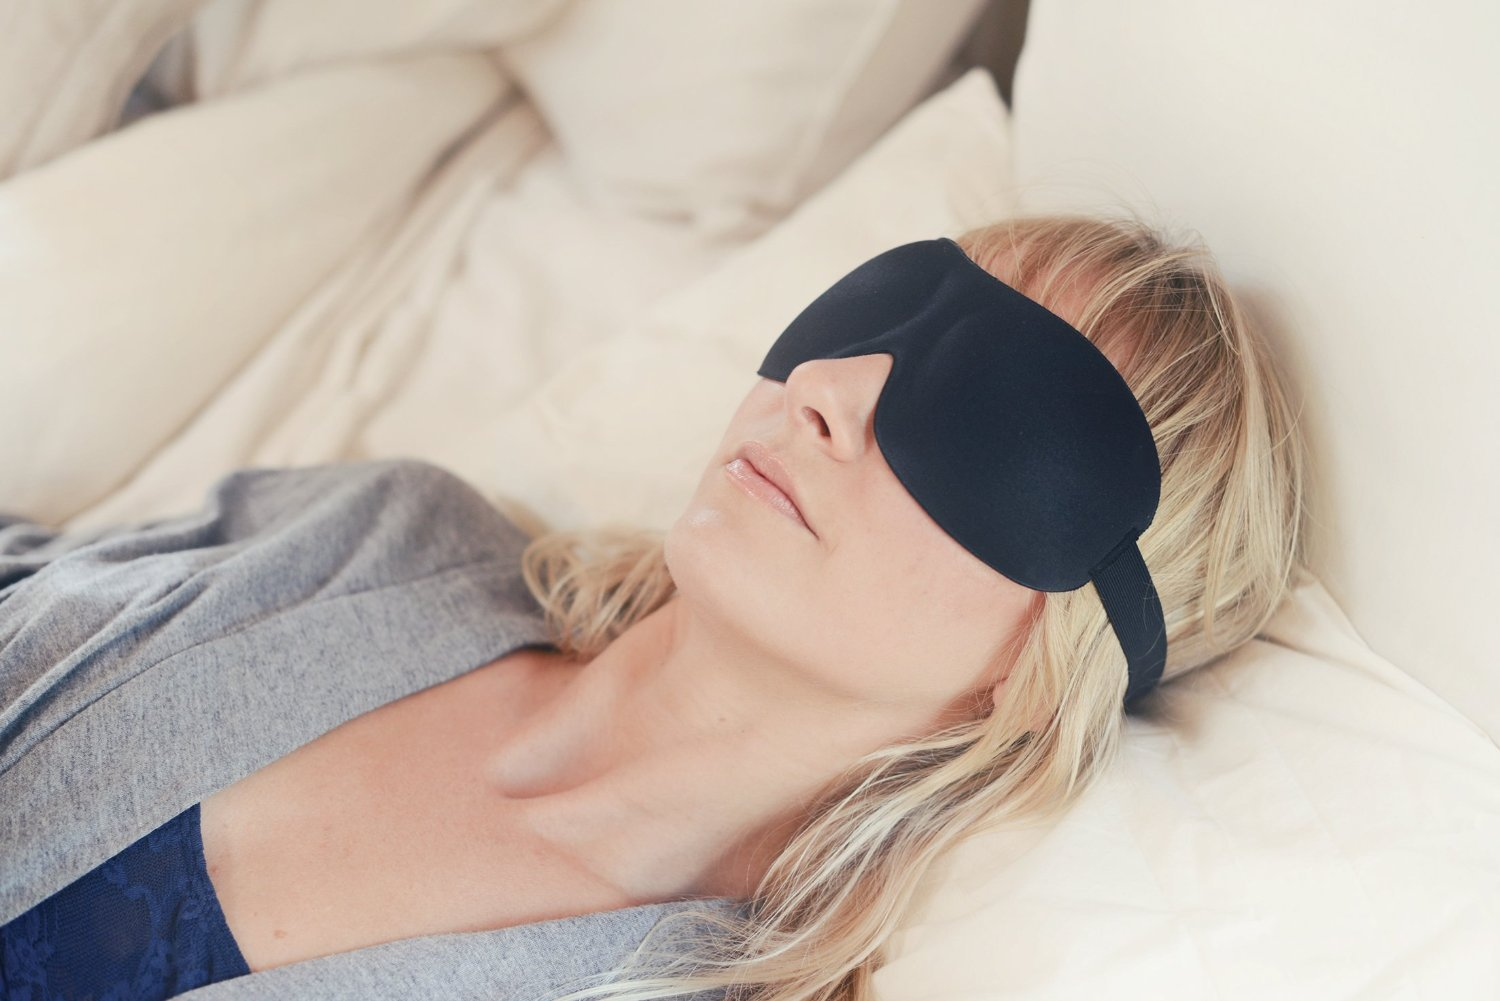 #1 Rated Patented Sleep Mask - Premium Quality Eye Mask with Contoured Shape by Nidra - Ultra Lightweight & Comfortable-Adjustable Head Strap - Sleep Anywhere Anytime - Sleep Satisfaction Guaranteed